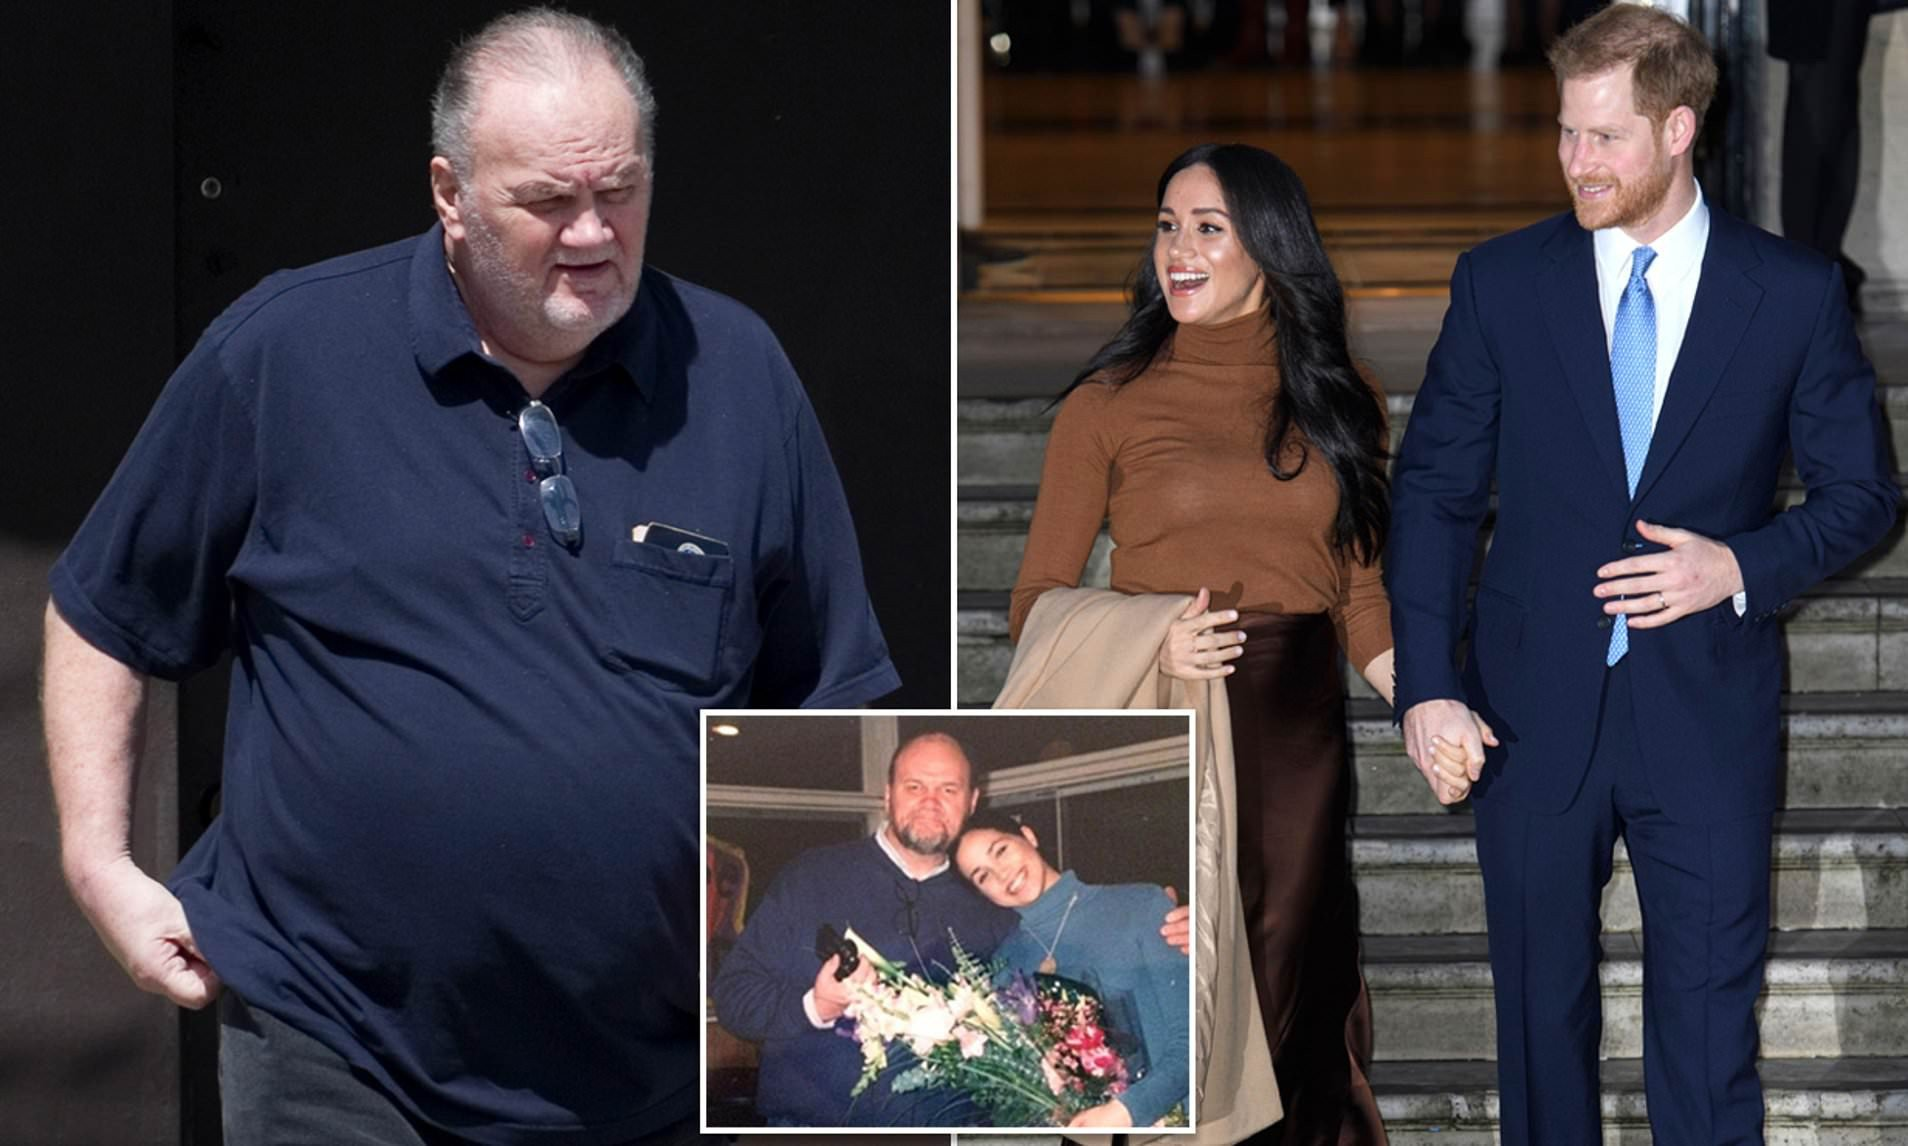 'I'll just simply say I'm disappointed': Meghan's estranged father Thomas Markle reacts to news his daughter and Prince Harry are quitting the royal family